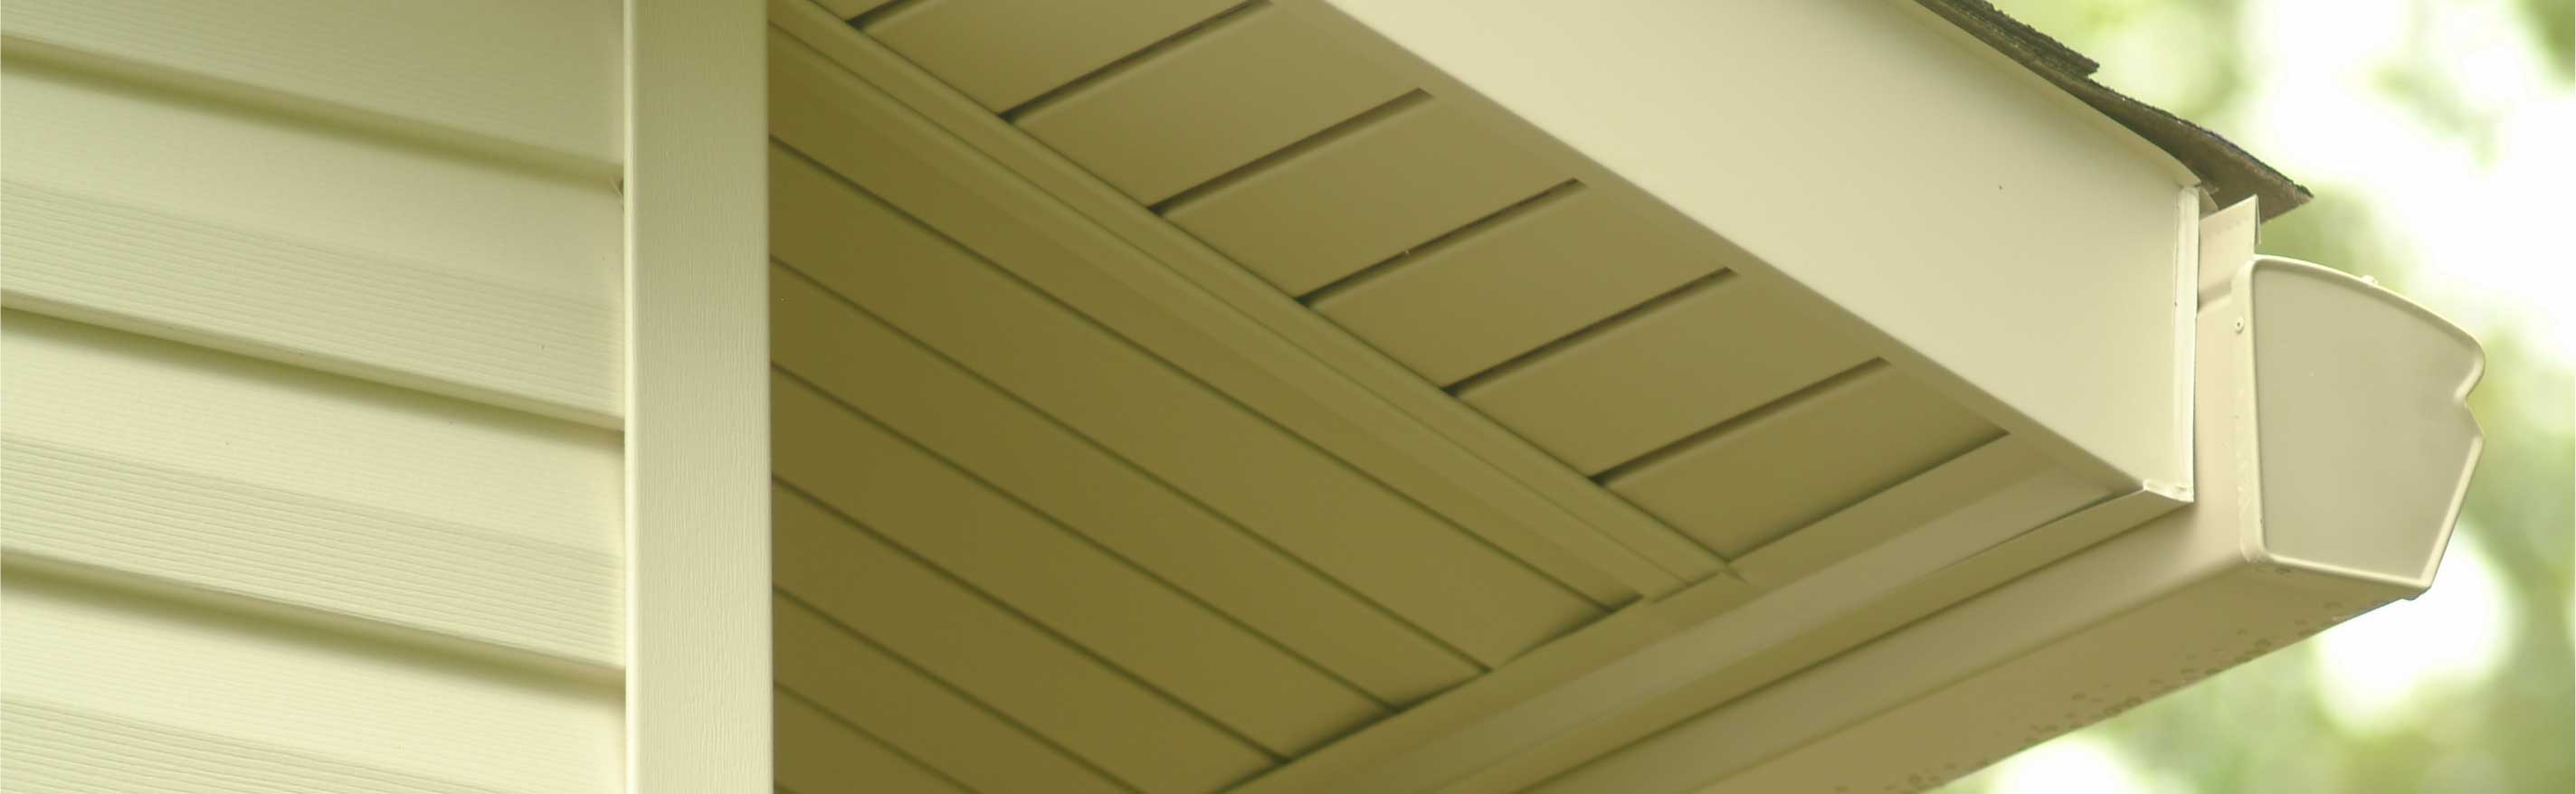 Aluminum Gutters From Gutterman Services